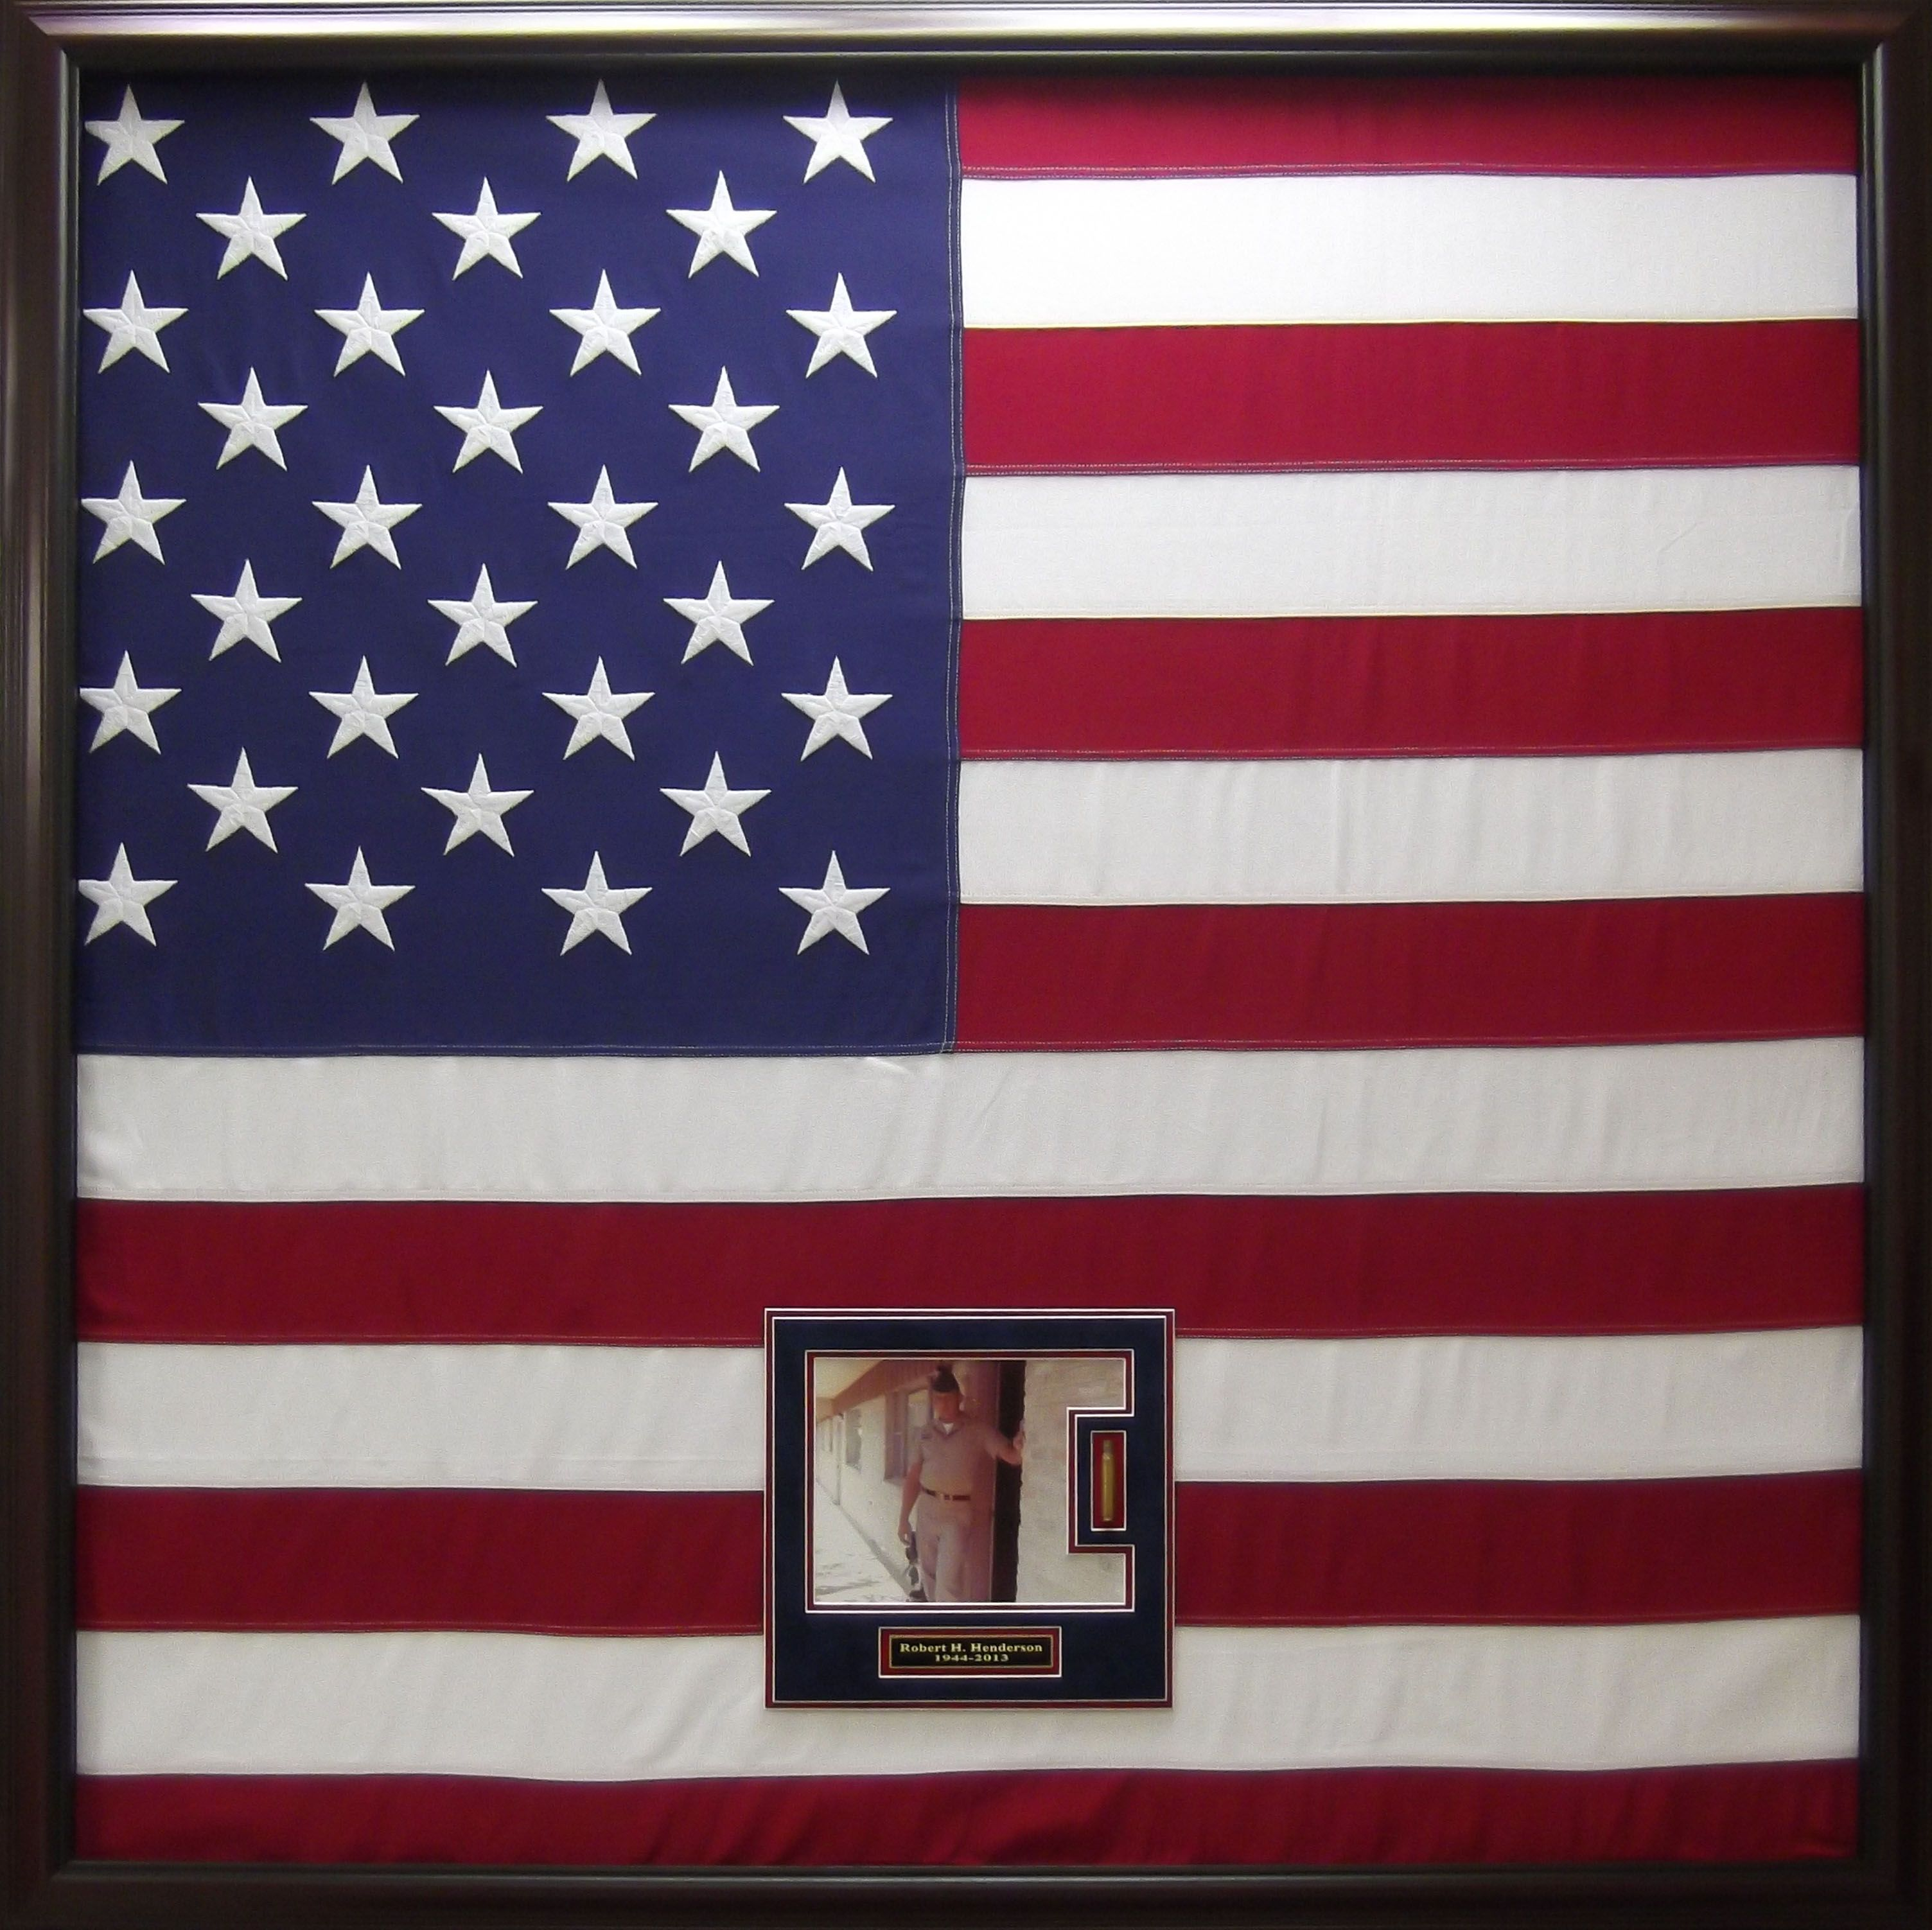 In honor of an American Veteran and his service. #Flags #Military ...